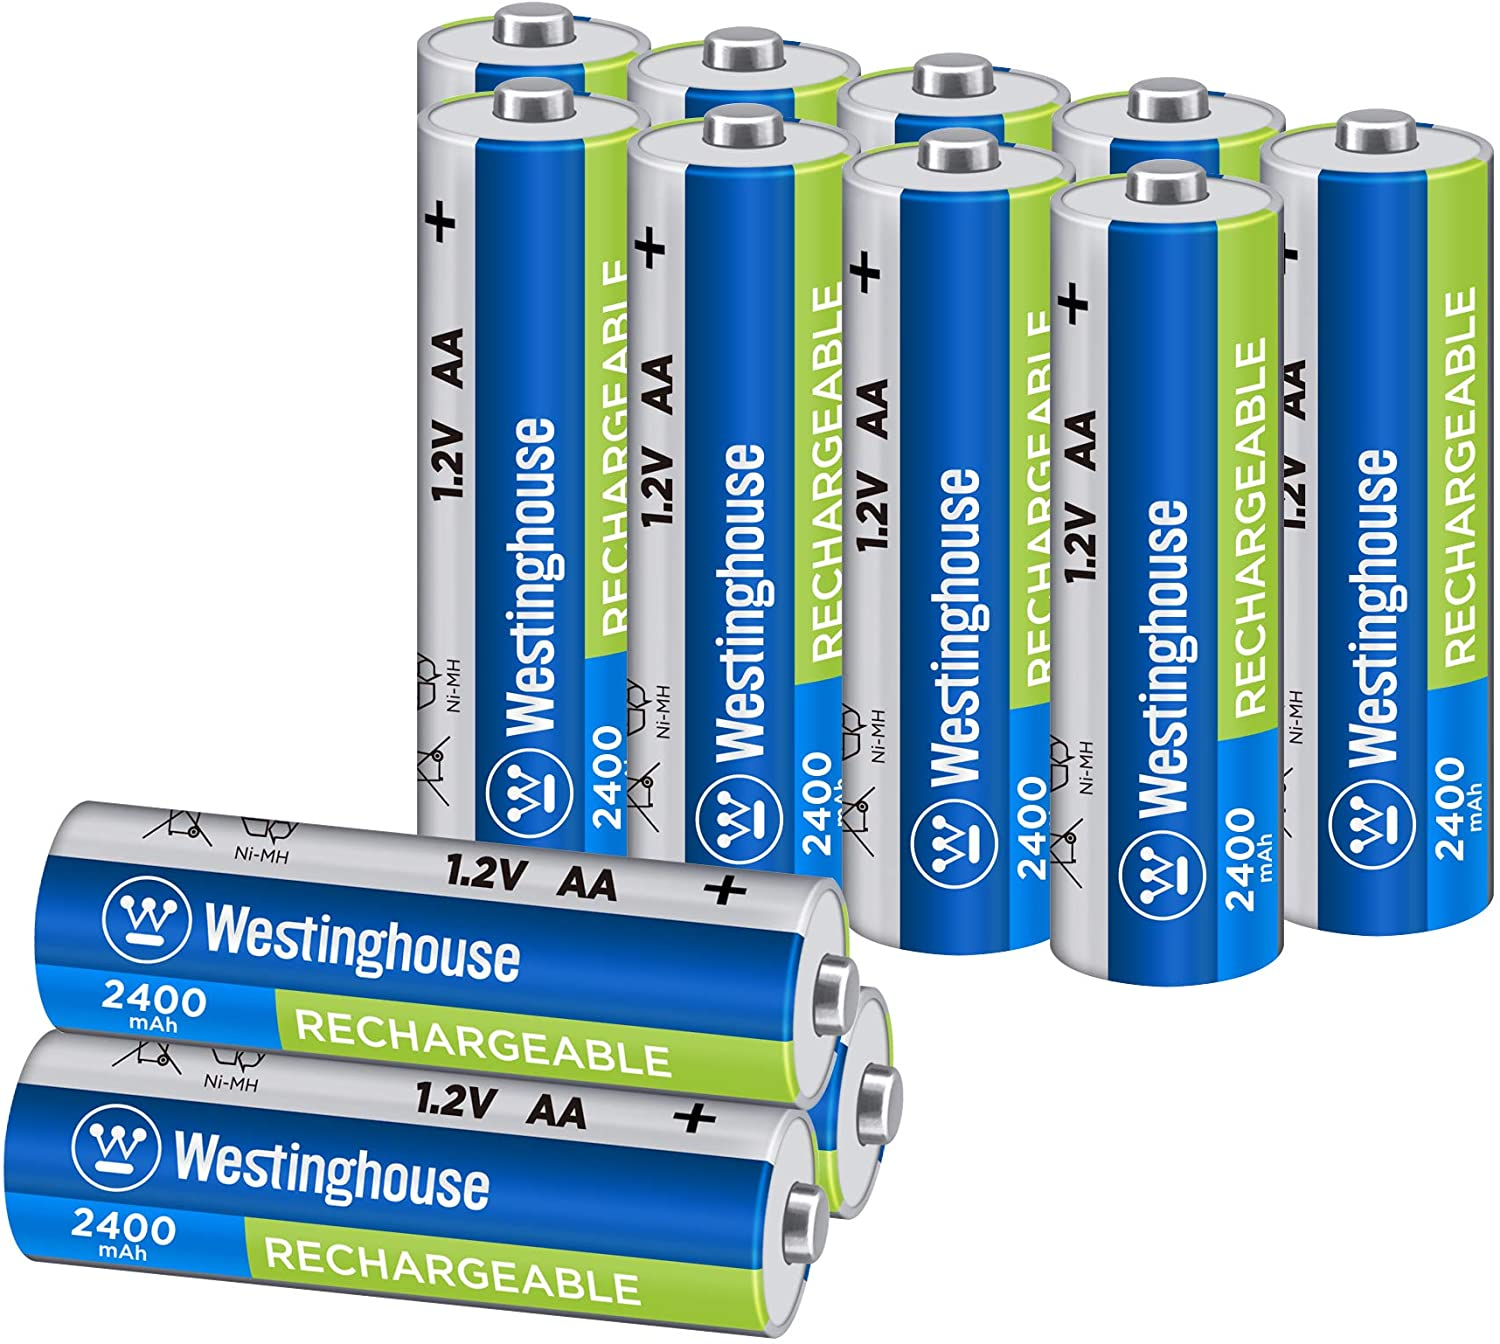 Westinghouse Rechargeable Battery, high Capacity 2400mAh NH Rechargeable Battery, 1 Year Low self Discharge (AA, 12 Counts)